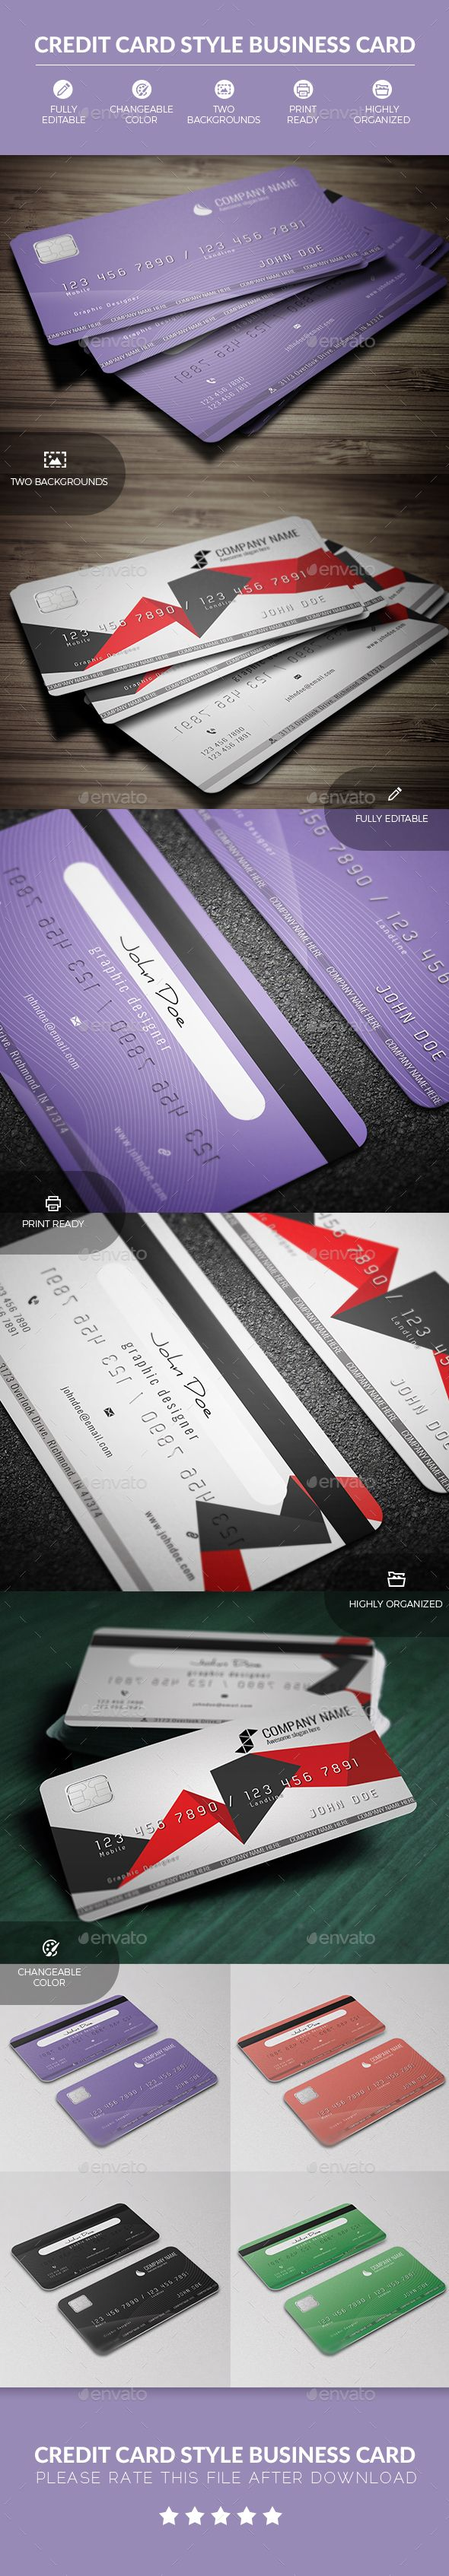 Credit Card Style Business Card | Business cards, Business card psd ...